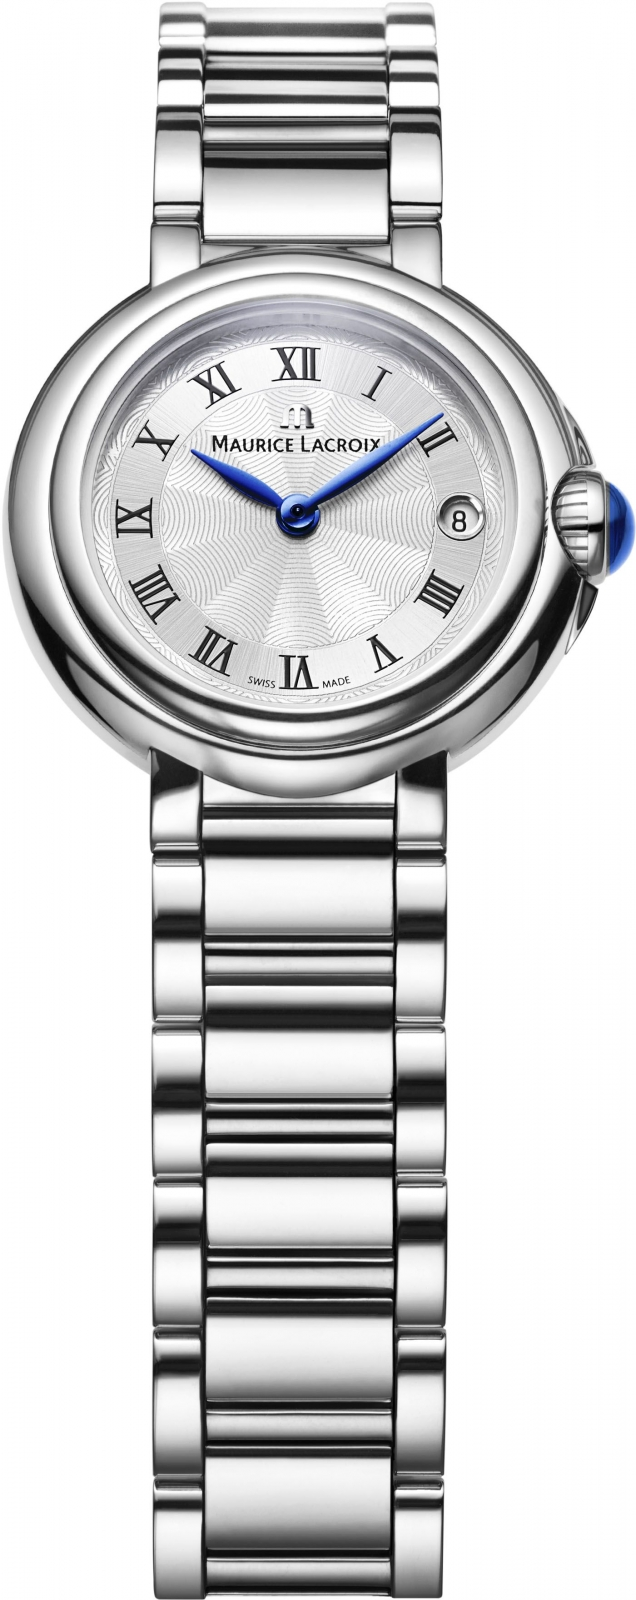 Maurice Lacroix Fiaba Date FA1003-SS002-110-1 от Maurice Lacroix